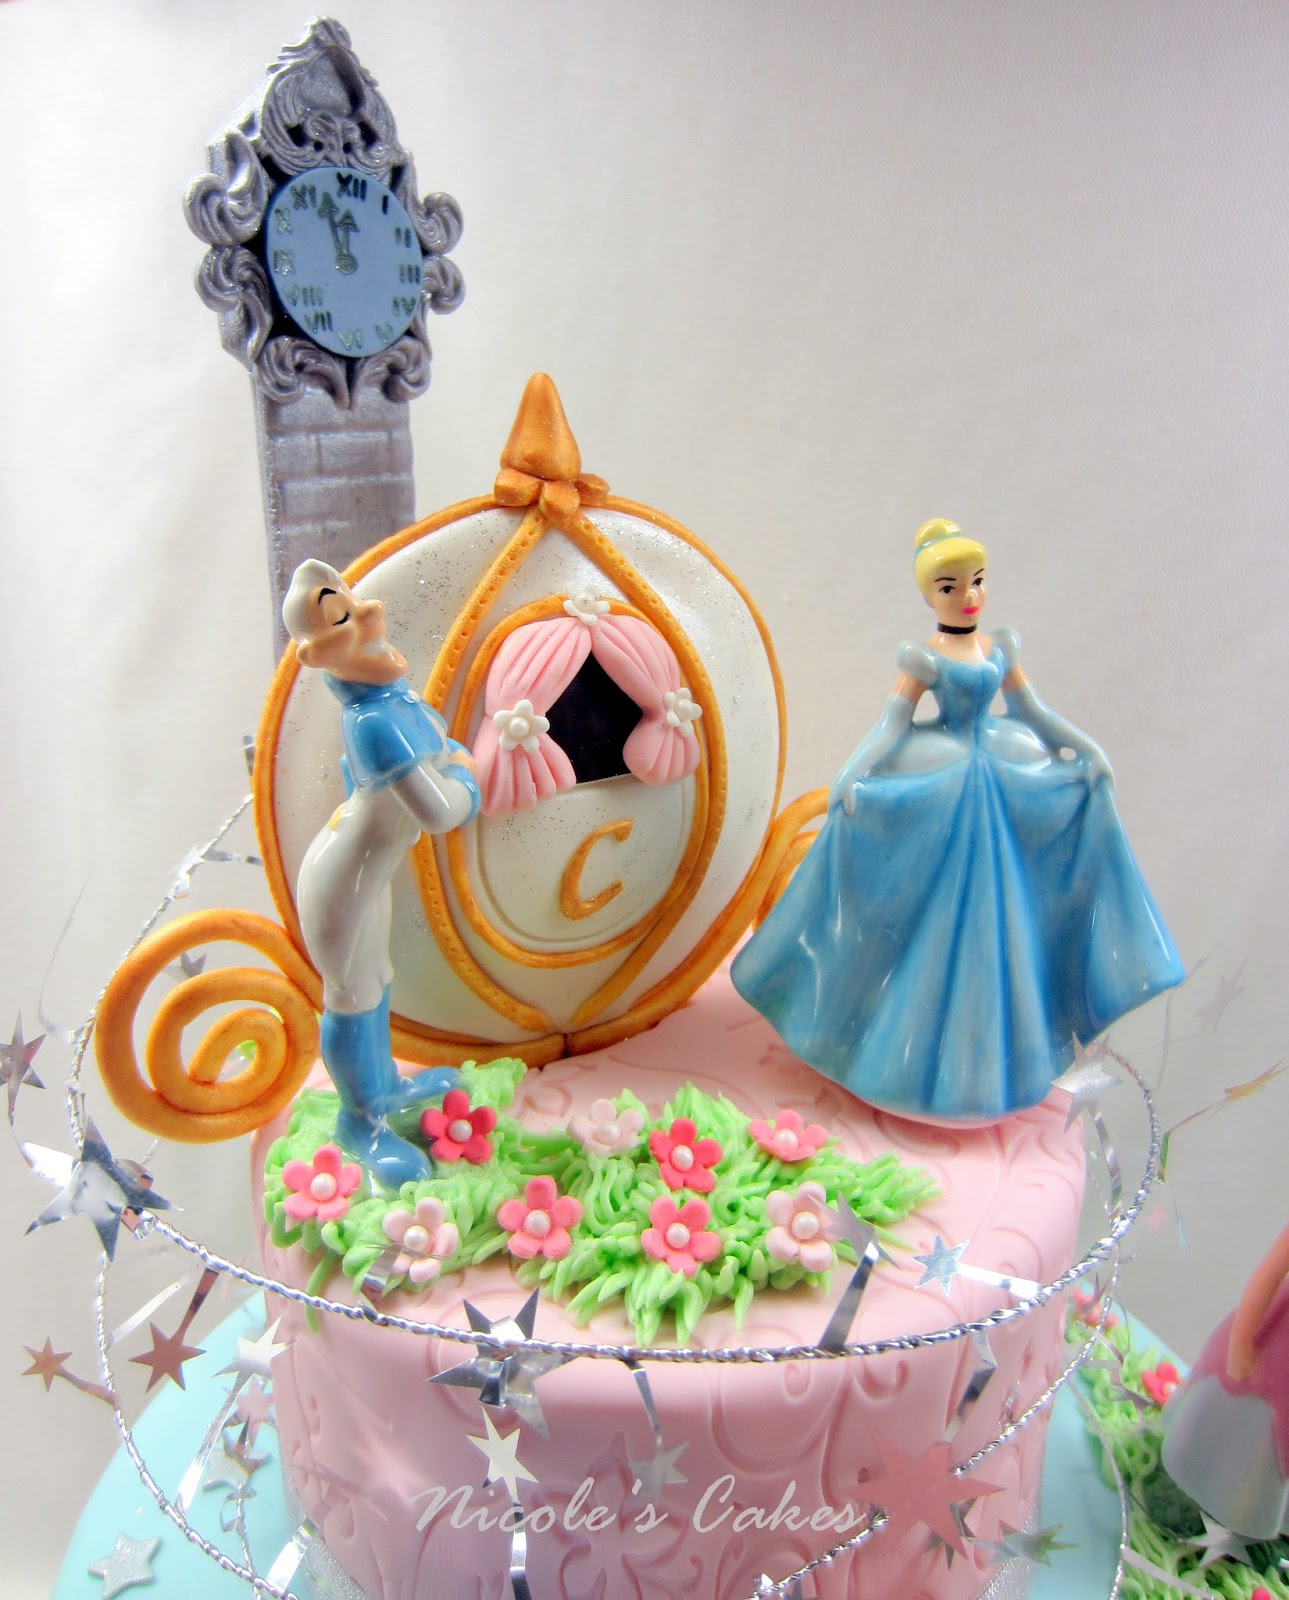 On Birthday Cakes The Cinderella Story A Birthday Cake